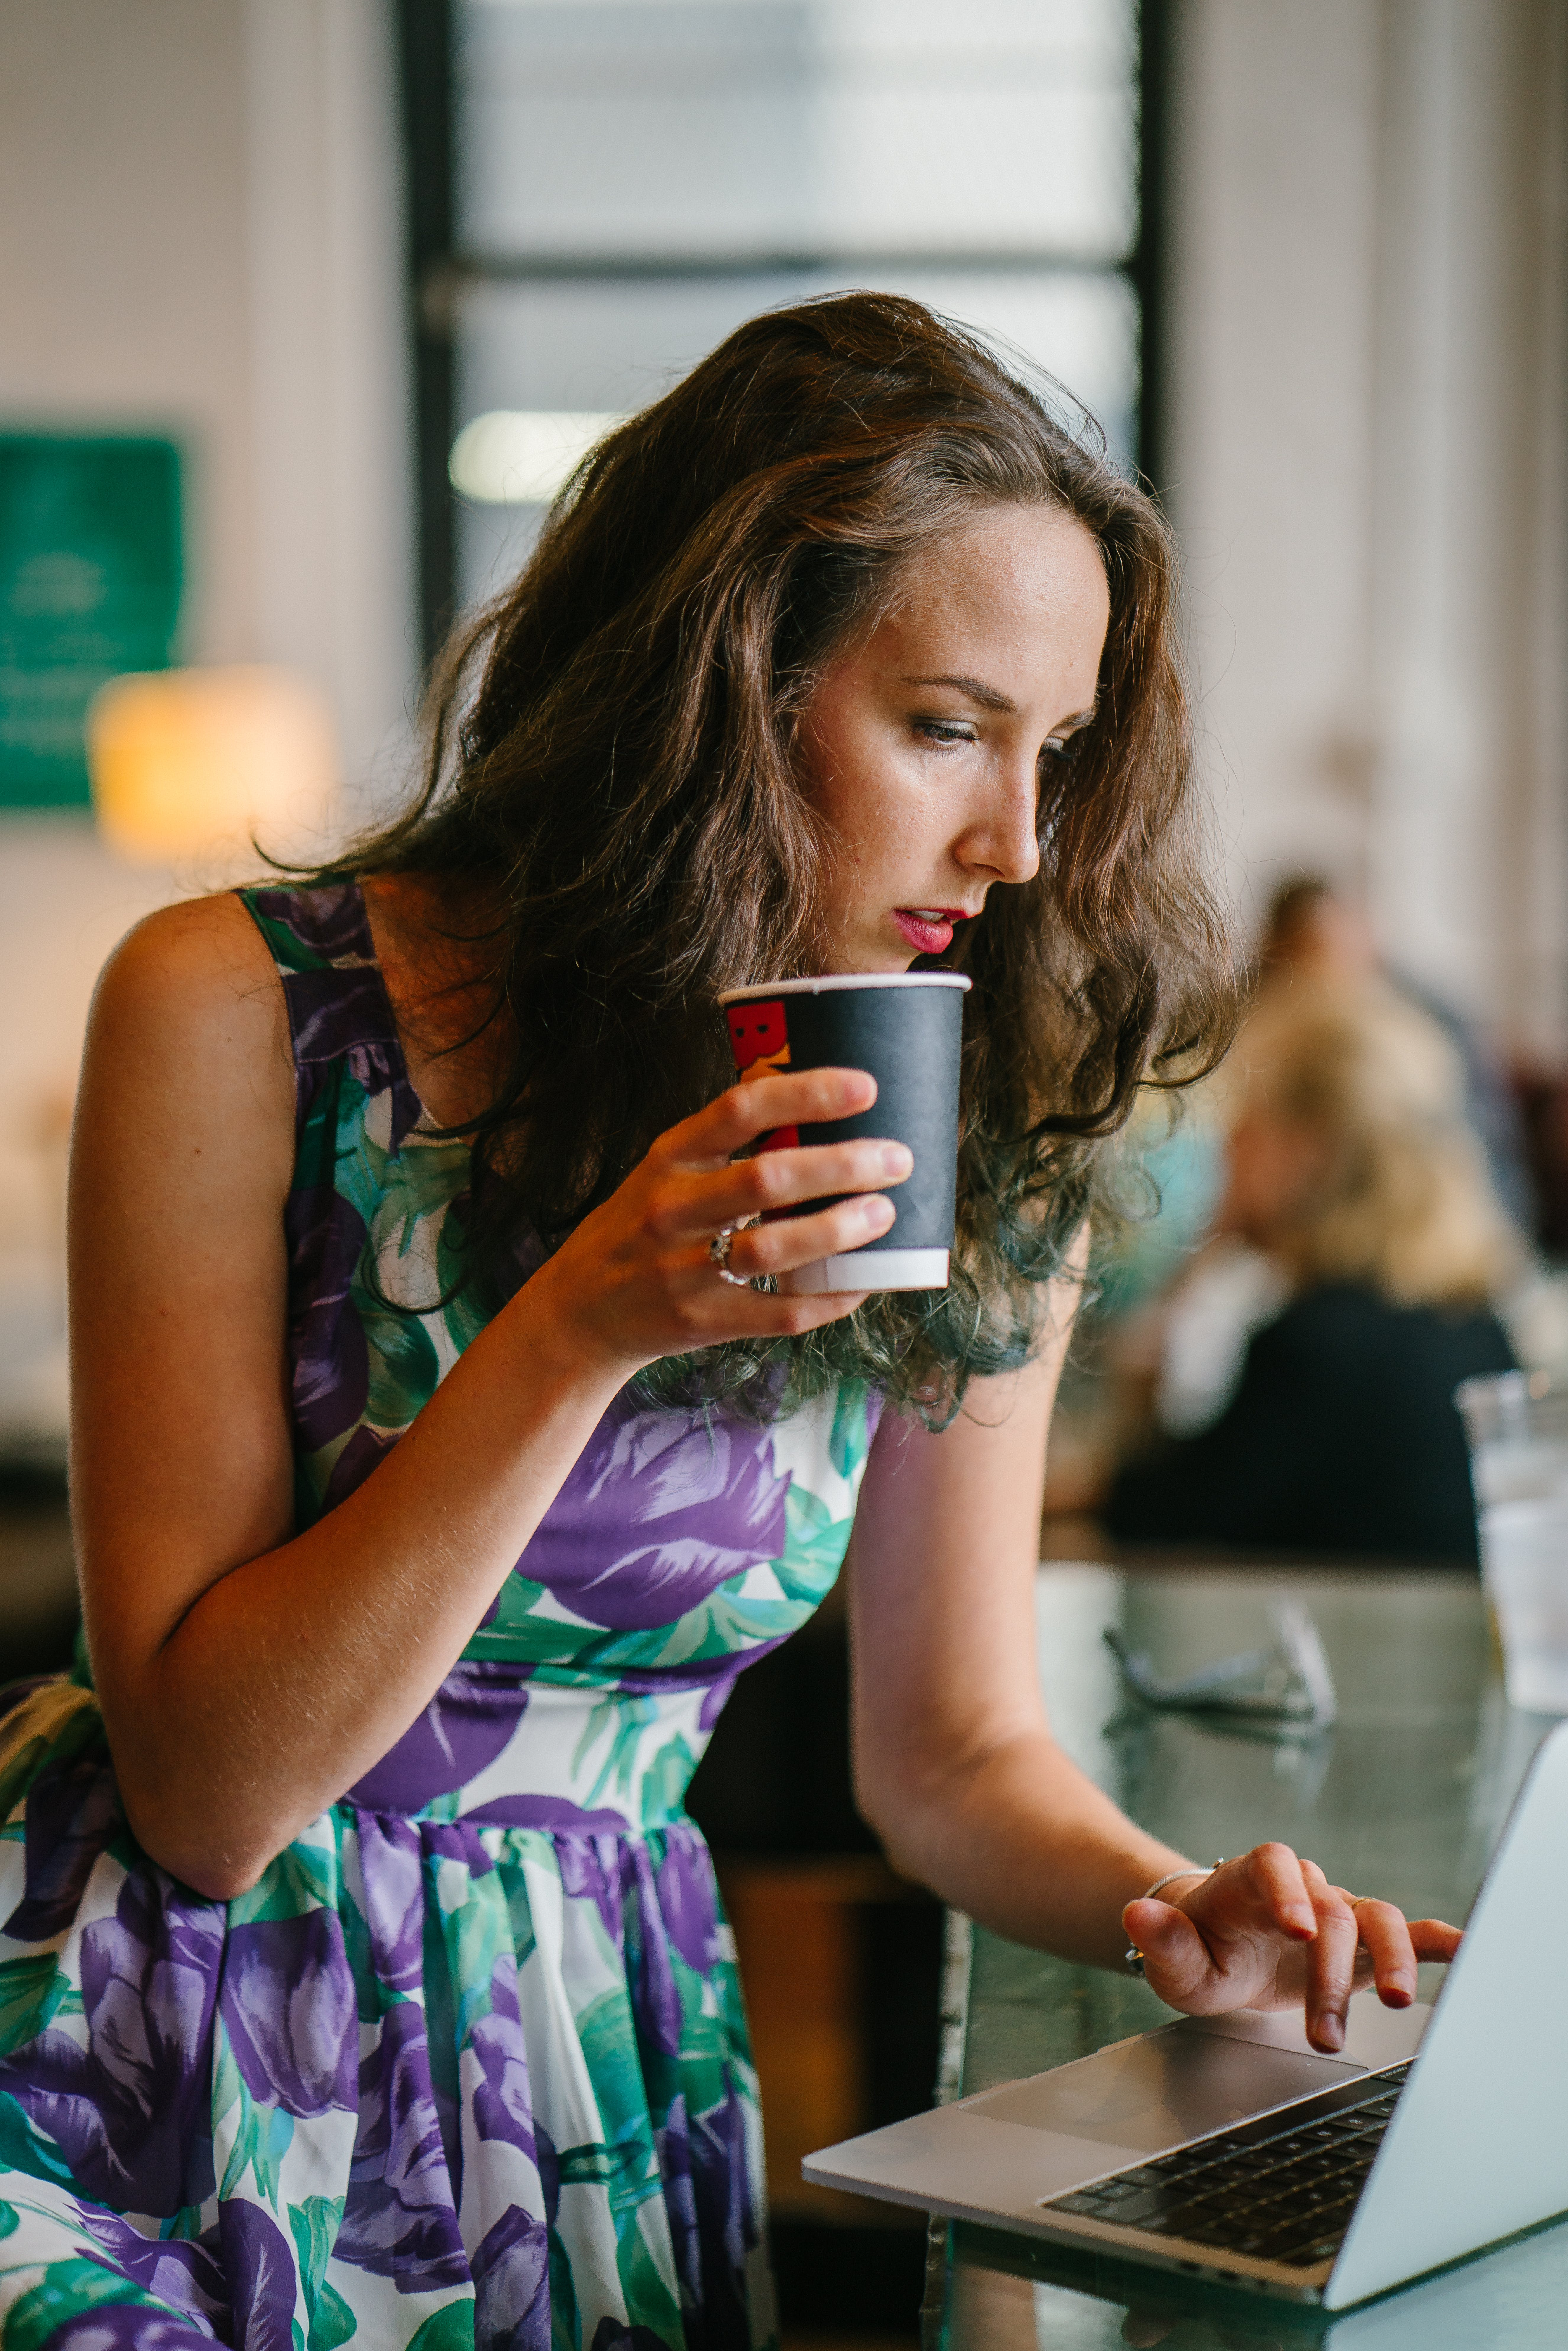 Selective Focus Photography of Woman Holding Disposable Cup Using Gray Laptop on Table